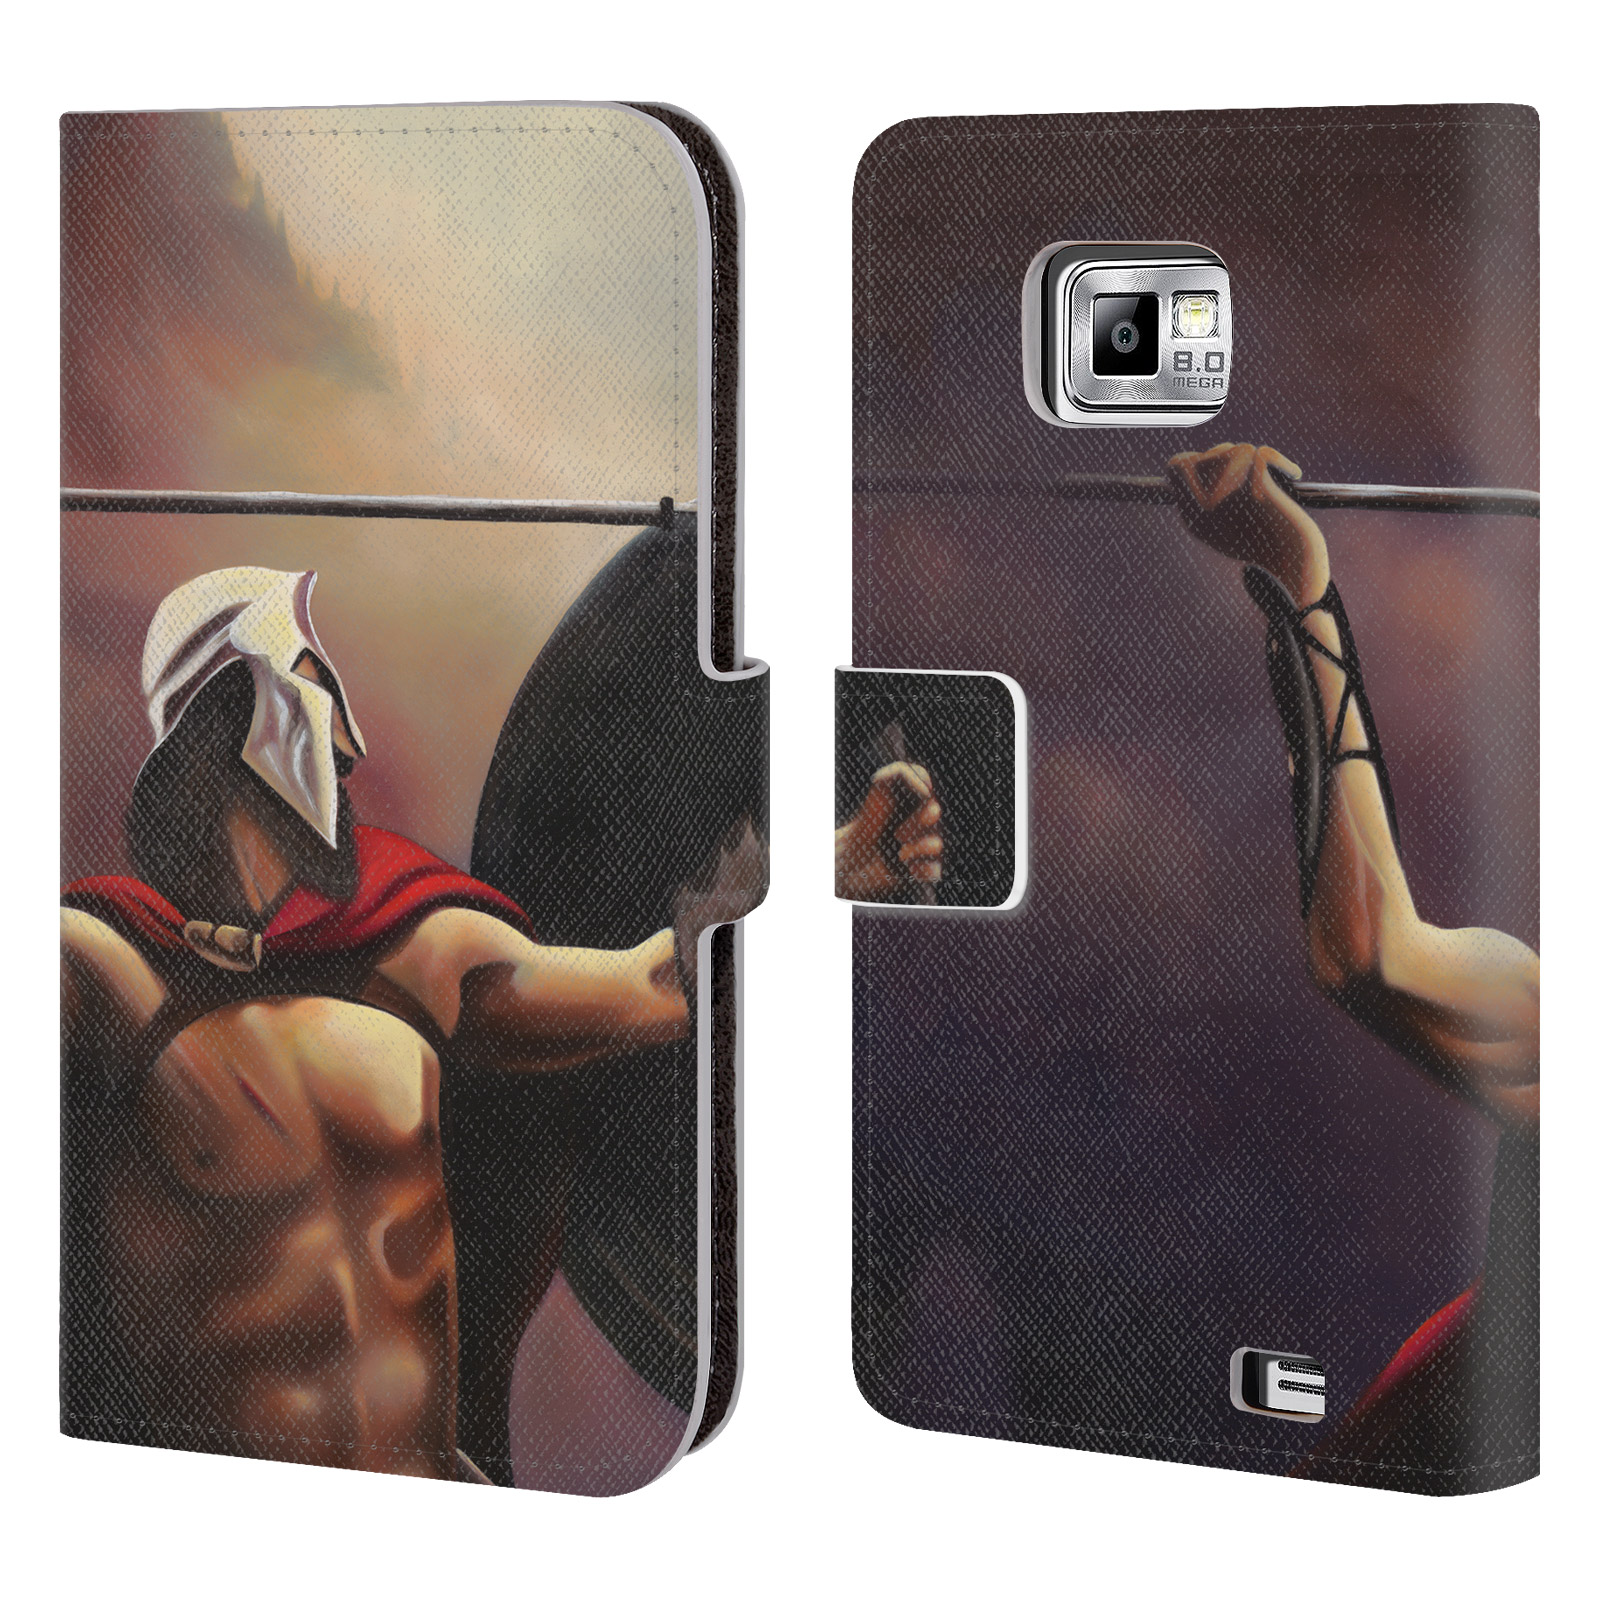 OFFICIAL-GENO-PEOPLES-ART-LIFE-LEATHER-BOOK-WALLET-CASE-FOR-SAMSUNG-PHONES-2